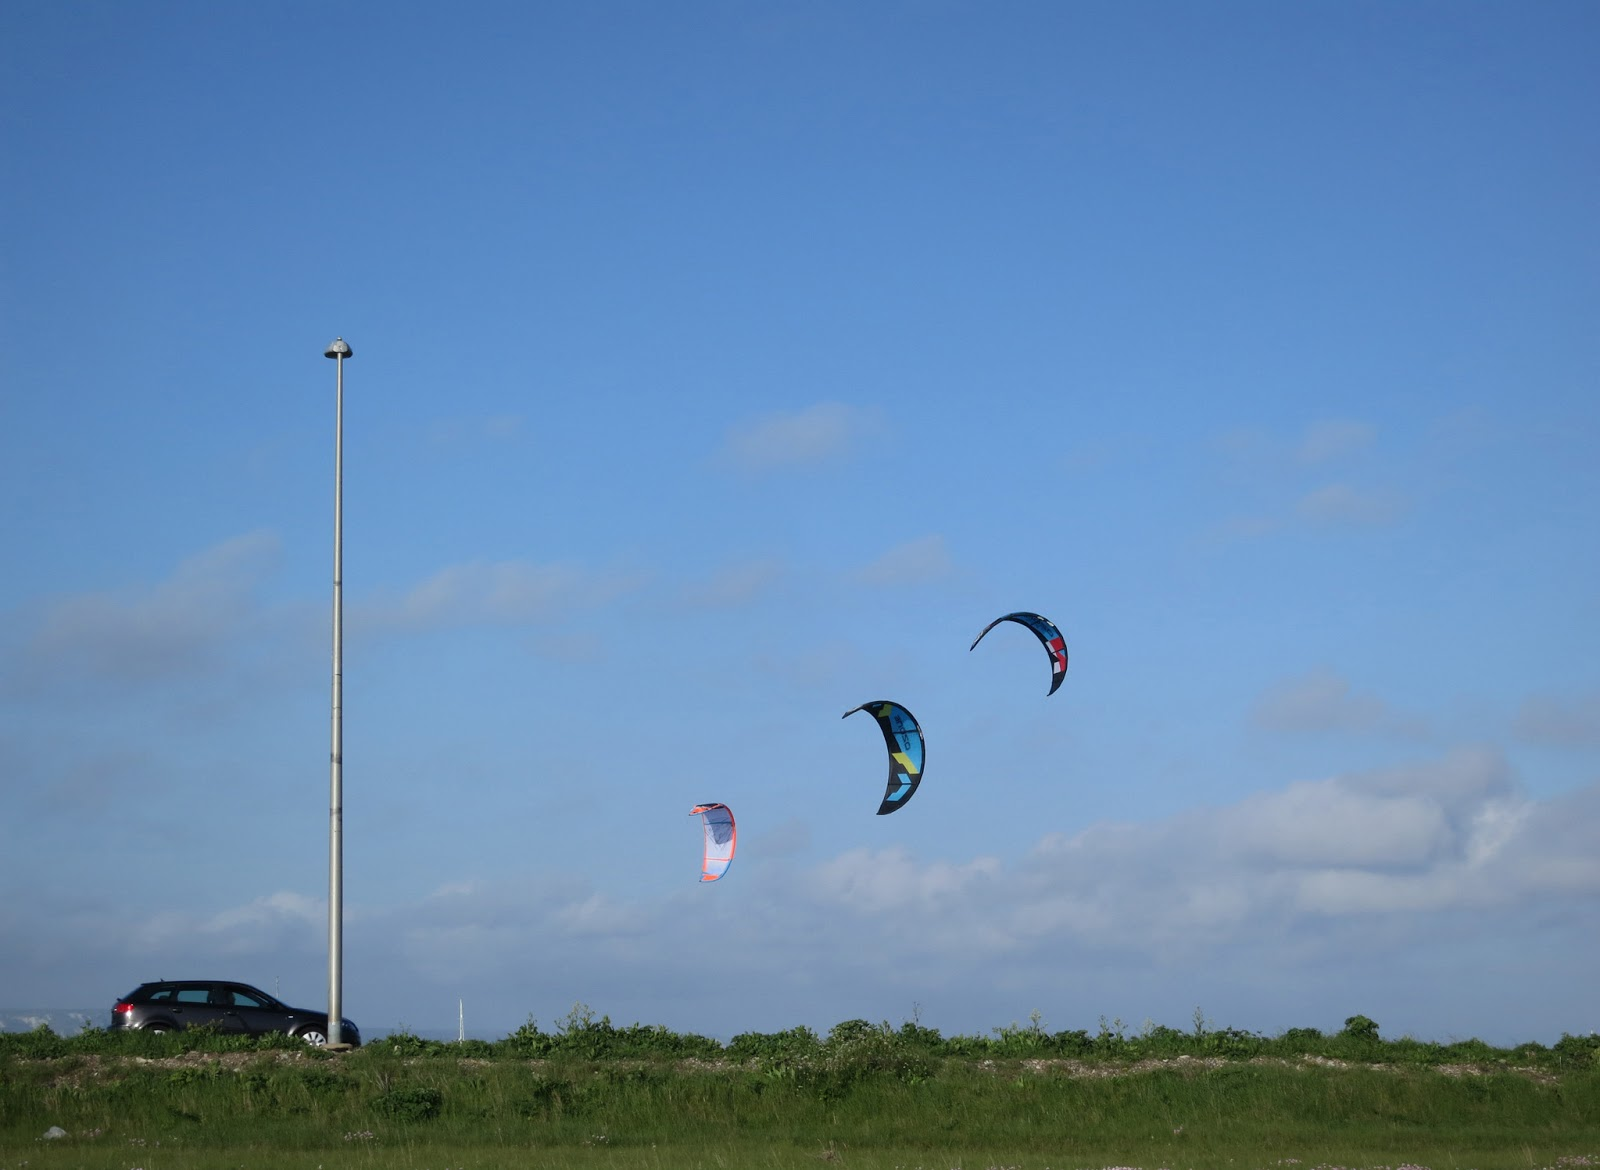 A car, a lampost and three kite-surfing canopies.